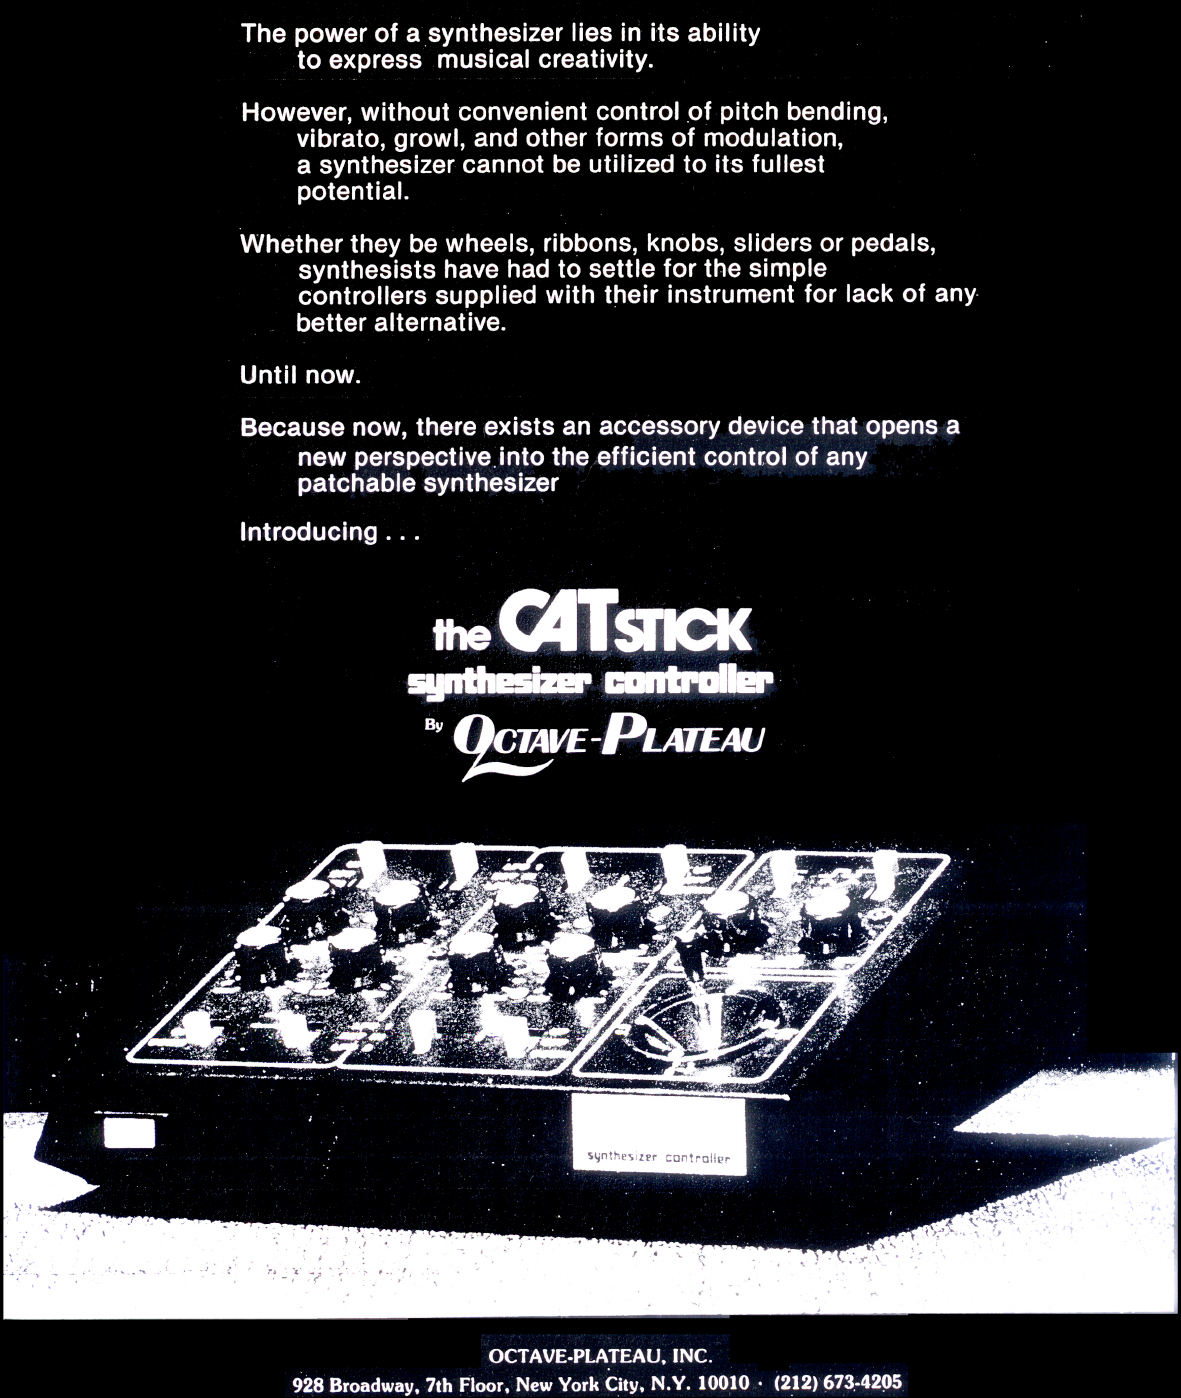 Page 5 of 6 - CatStick Cat Stick Info From Octave-Plateau